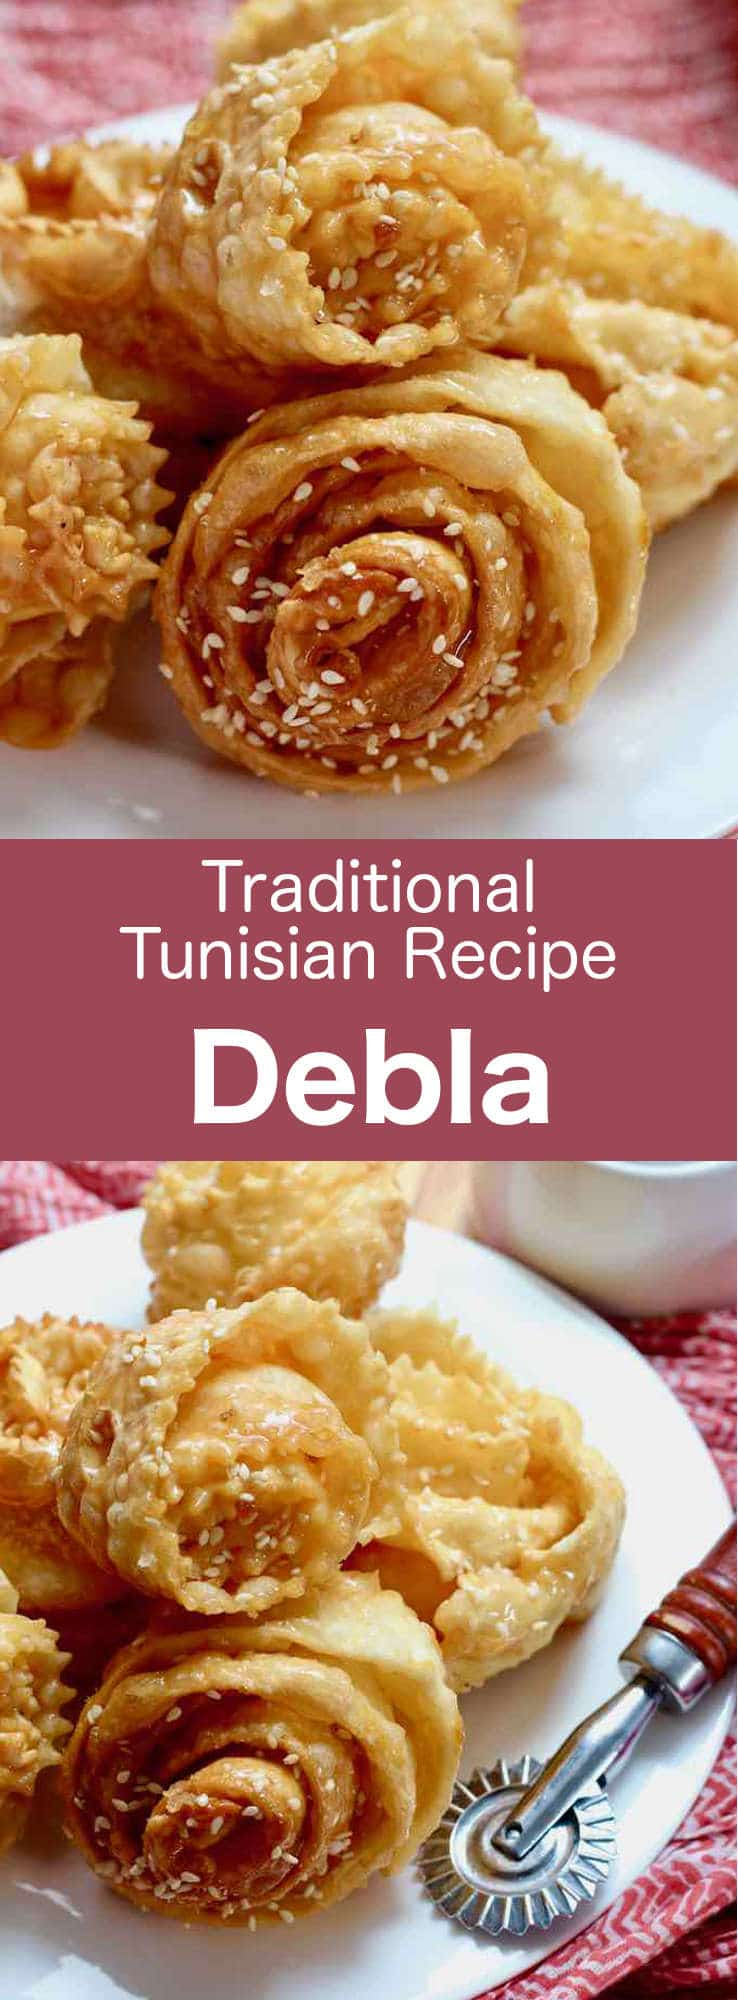 Debla (or Ouedhnine el Kadhi) is a Tunisian pastry which consists of a thin strip of dough that is fried before being coated with an orange blossom water scented syrup, and sprinkled with sesame seeds or crushed nuts. #Tunisia #Tunisian #TunisianCuisine #TunisianRecipe #NorthAfricanCuisine #NorthAfricanRecipe #NorthAfrica #Maghreb #MaghrebCuisine #Pastry #TunisianPastry #NorthAfricanPastry #WorldCuisine #196flavors